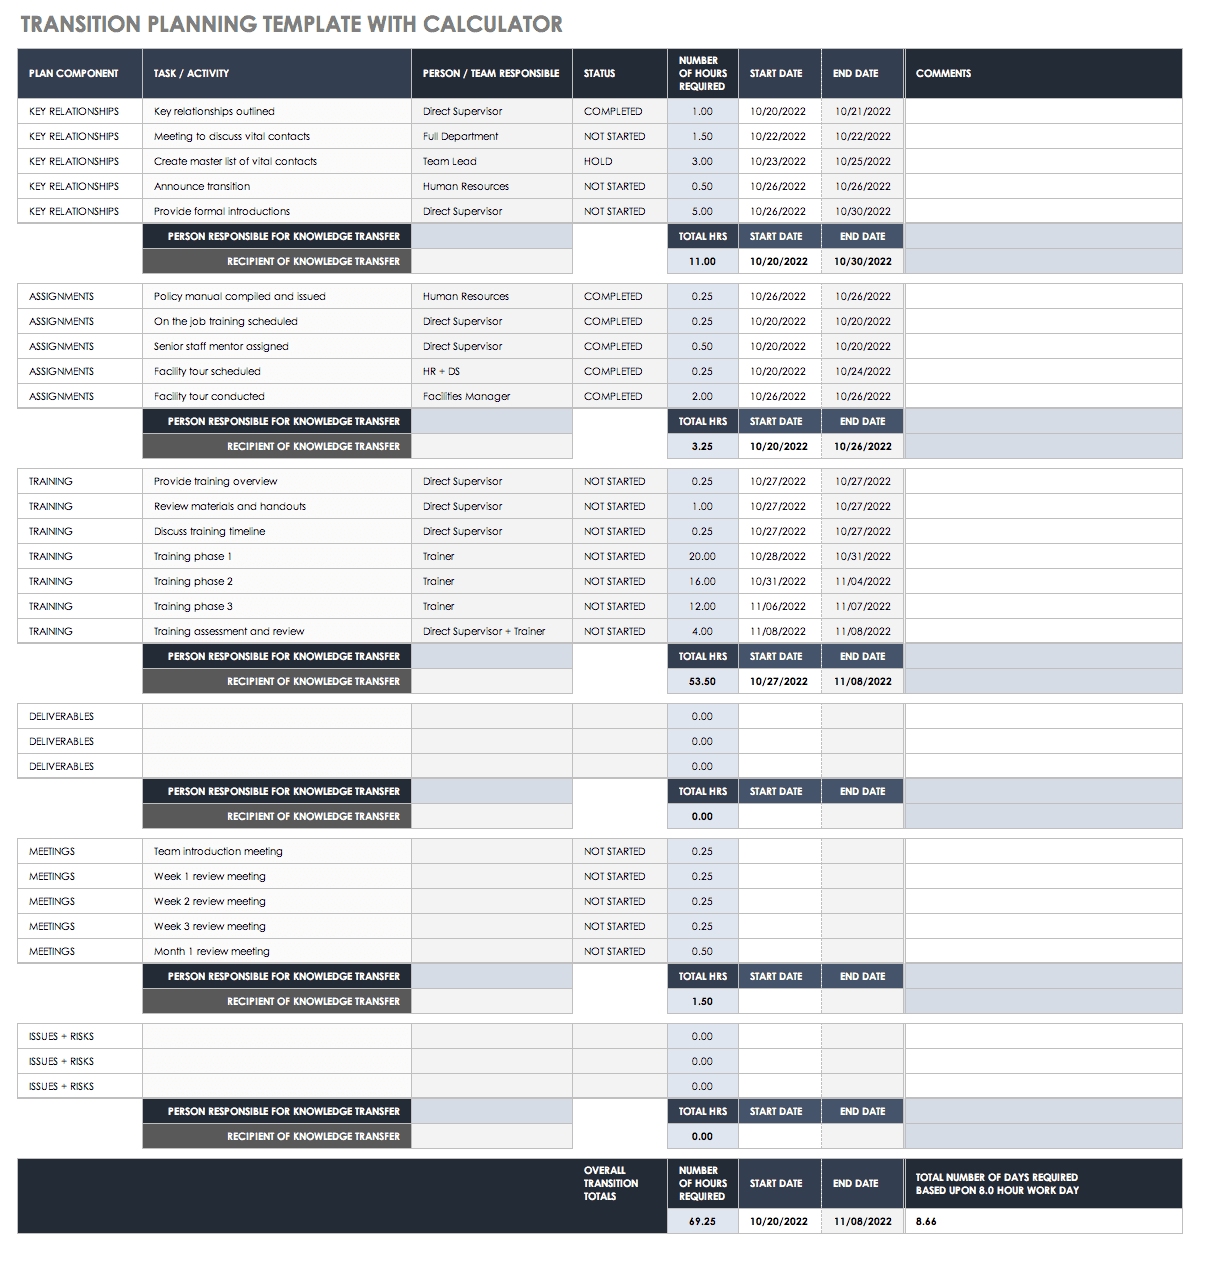 Role Transition Planning Template with Calculator